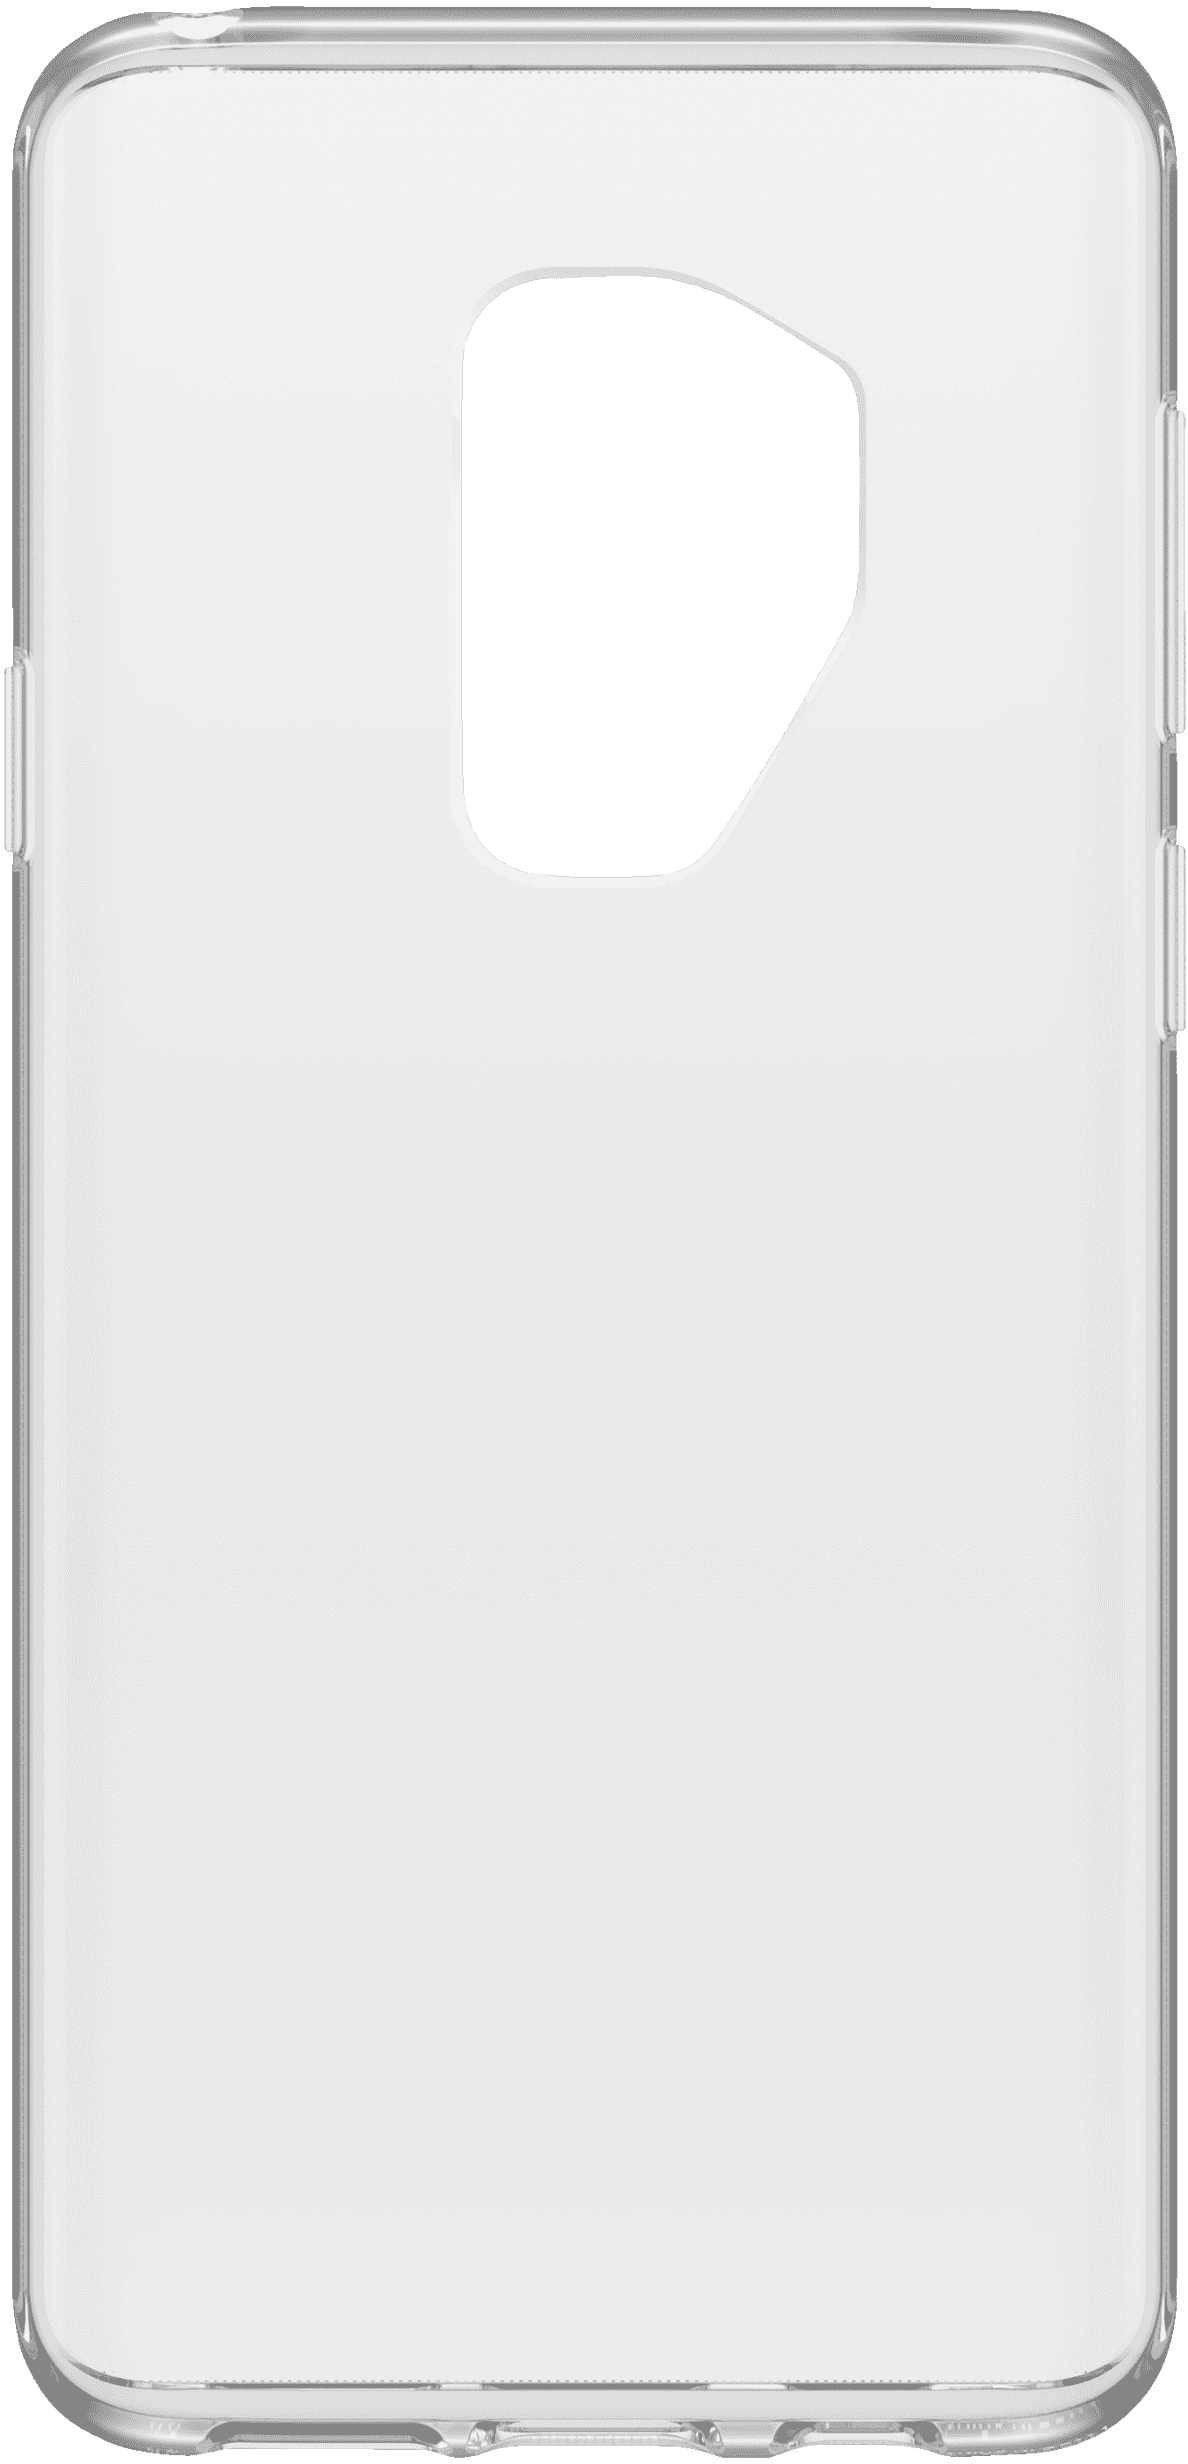 OTTERBOX Clearly Protected Skin für Samsung Galaxy S9+ in Transparent